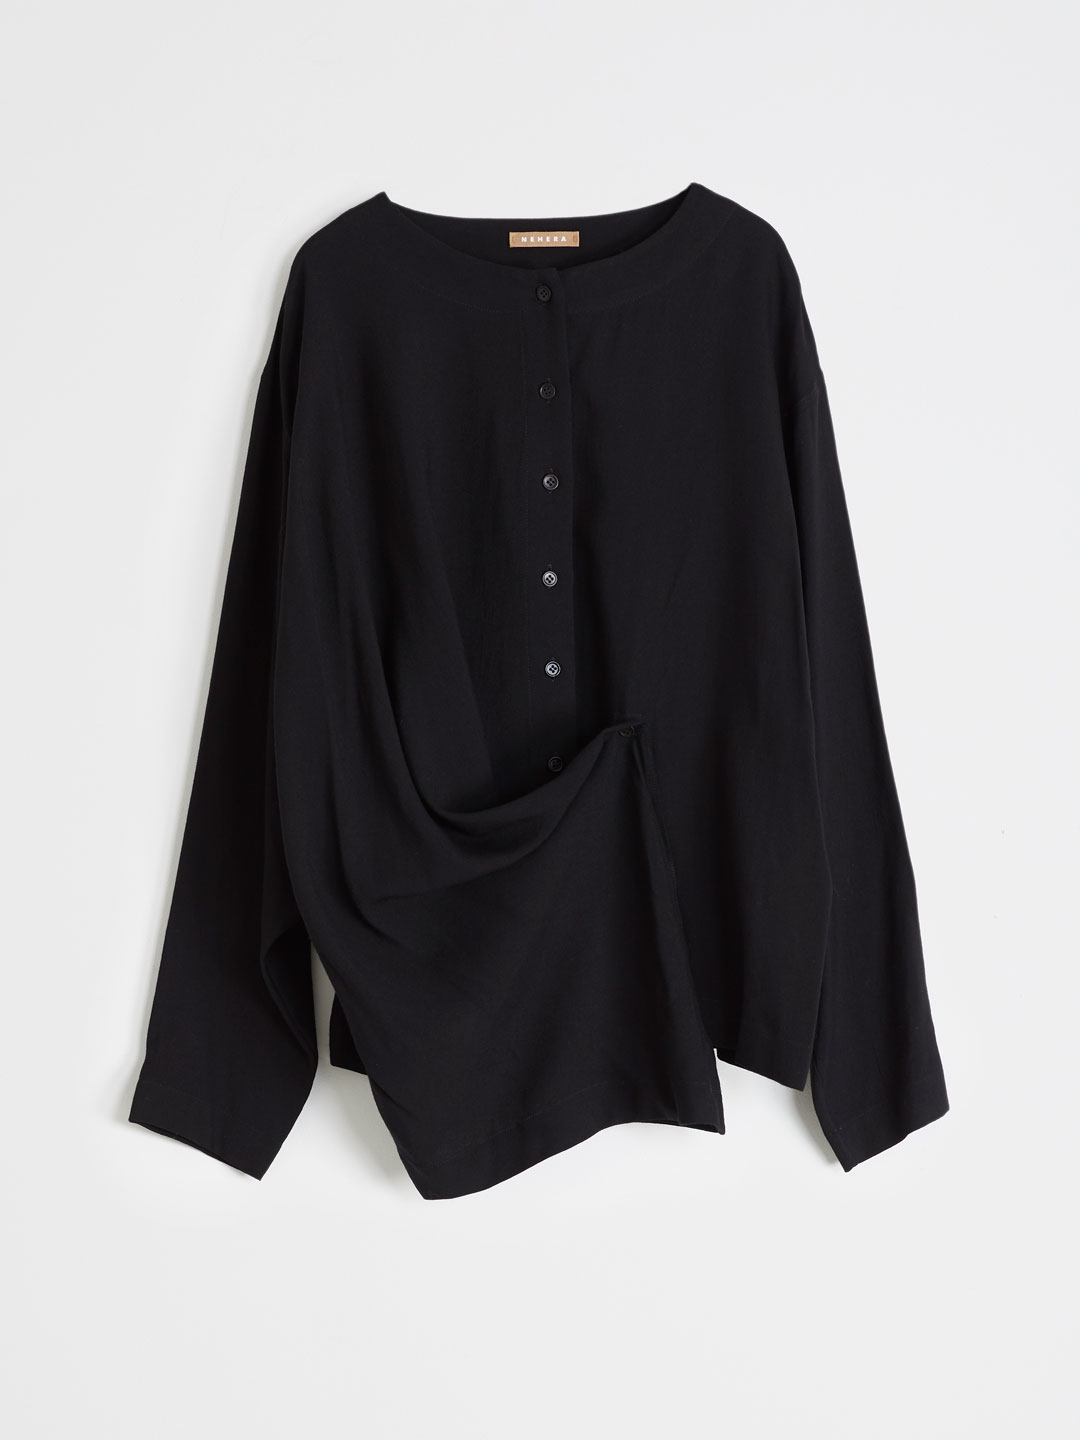 Viscose Wool Blend Shirts - Black